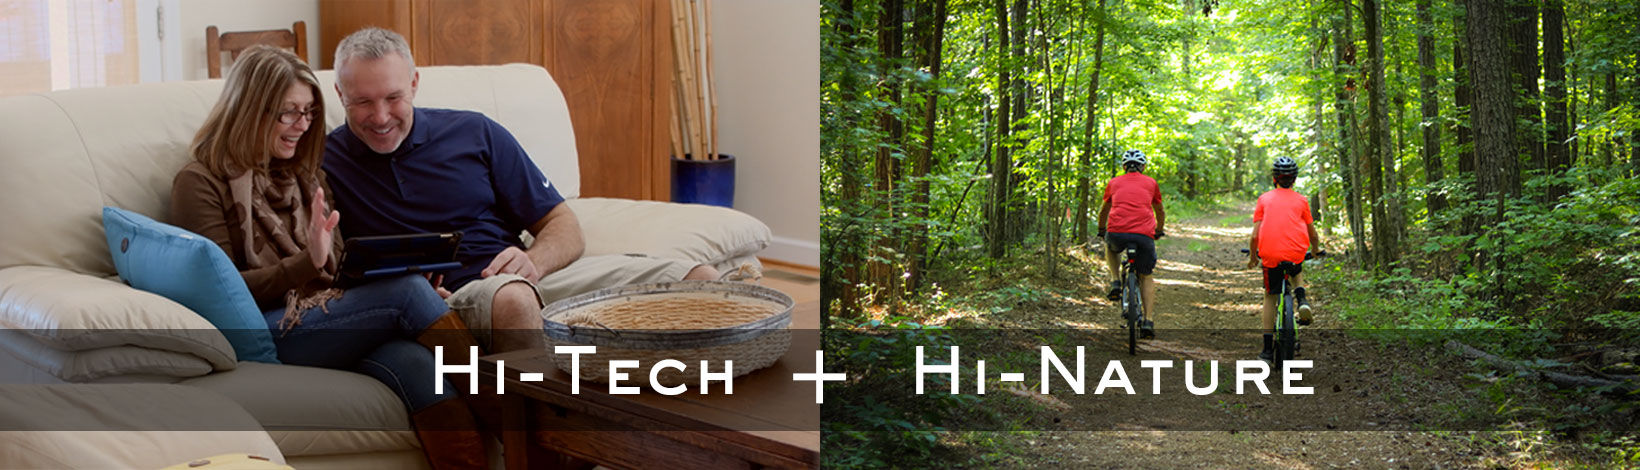 hi-tech-hi-nature-wide